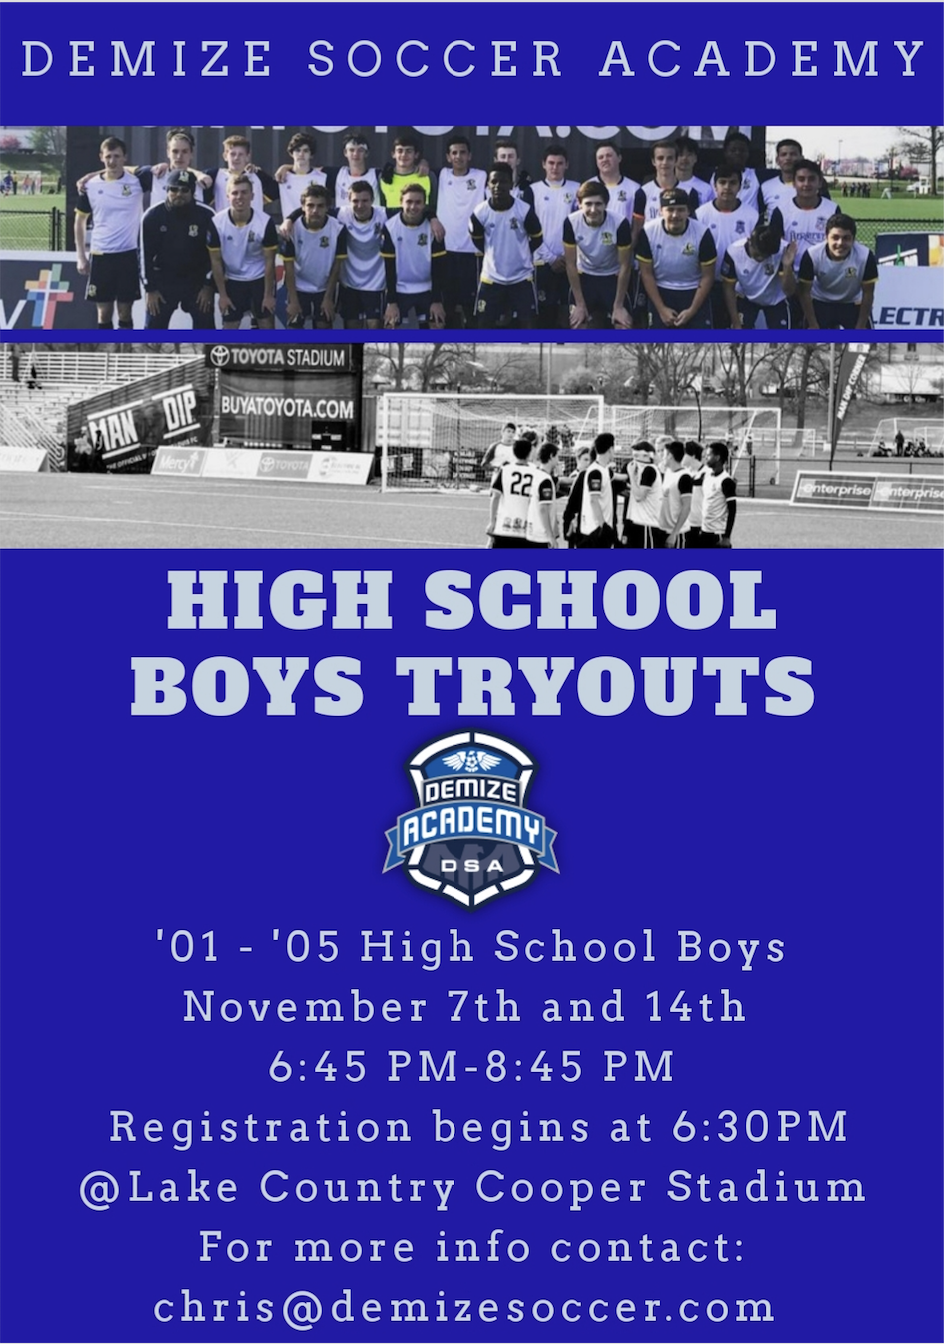 DEMIZE ACADEMY HIGH SCHOOL BOYS TRYOUTS !